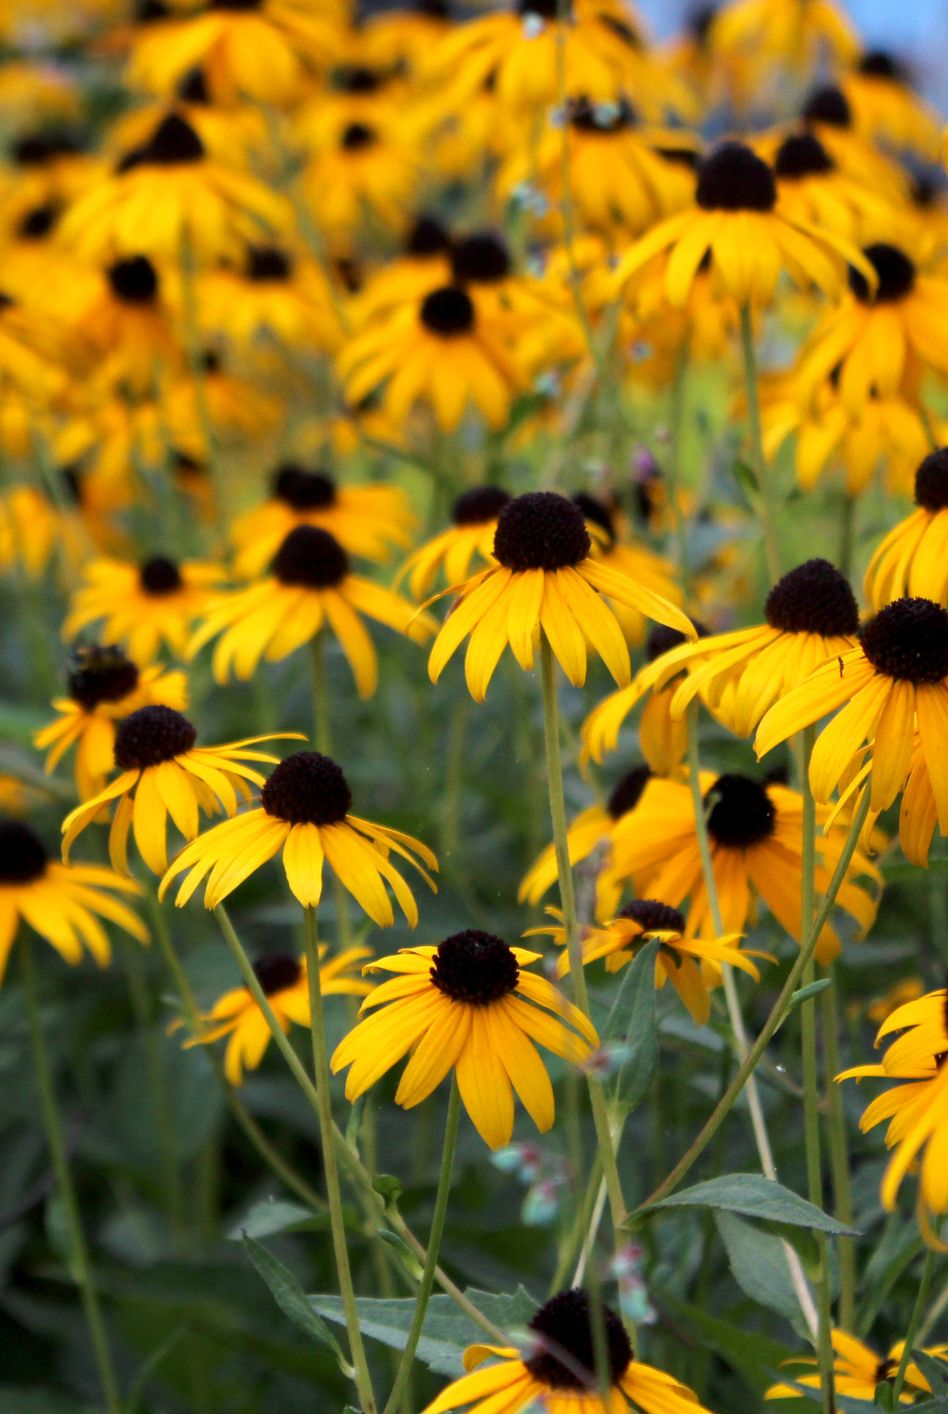 10 Perennials That'll Add Tons of Color to Your Garden